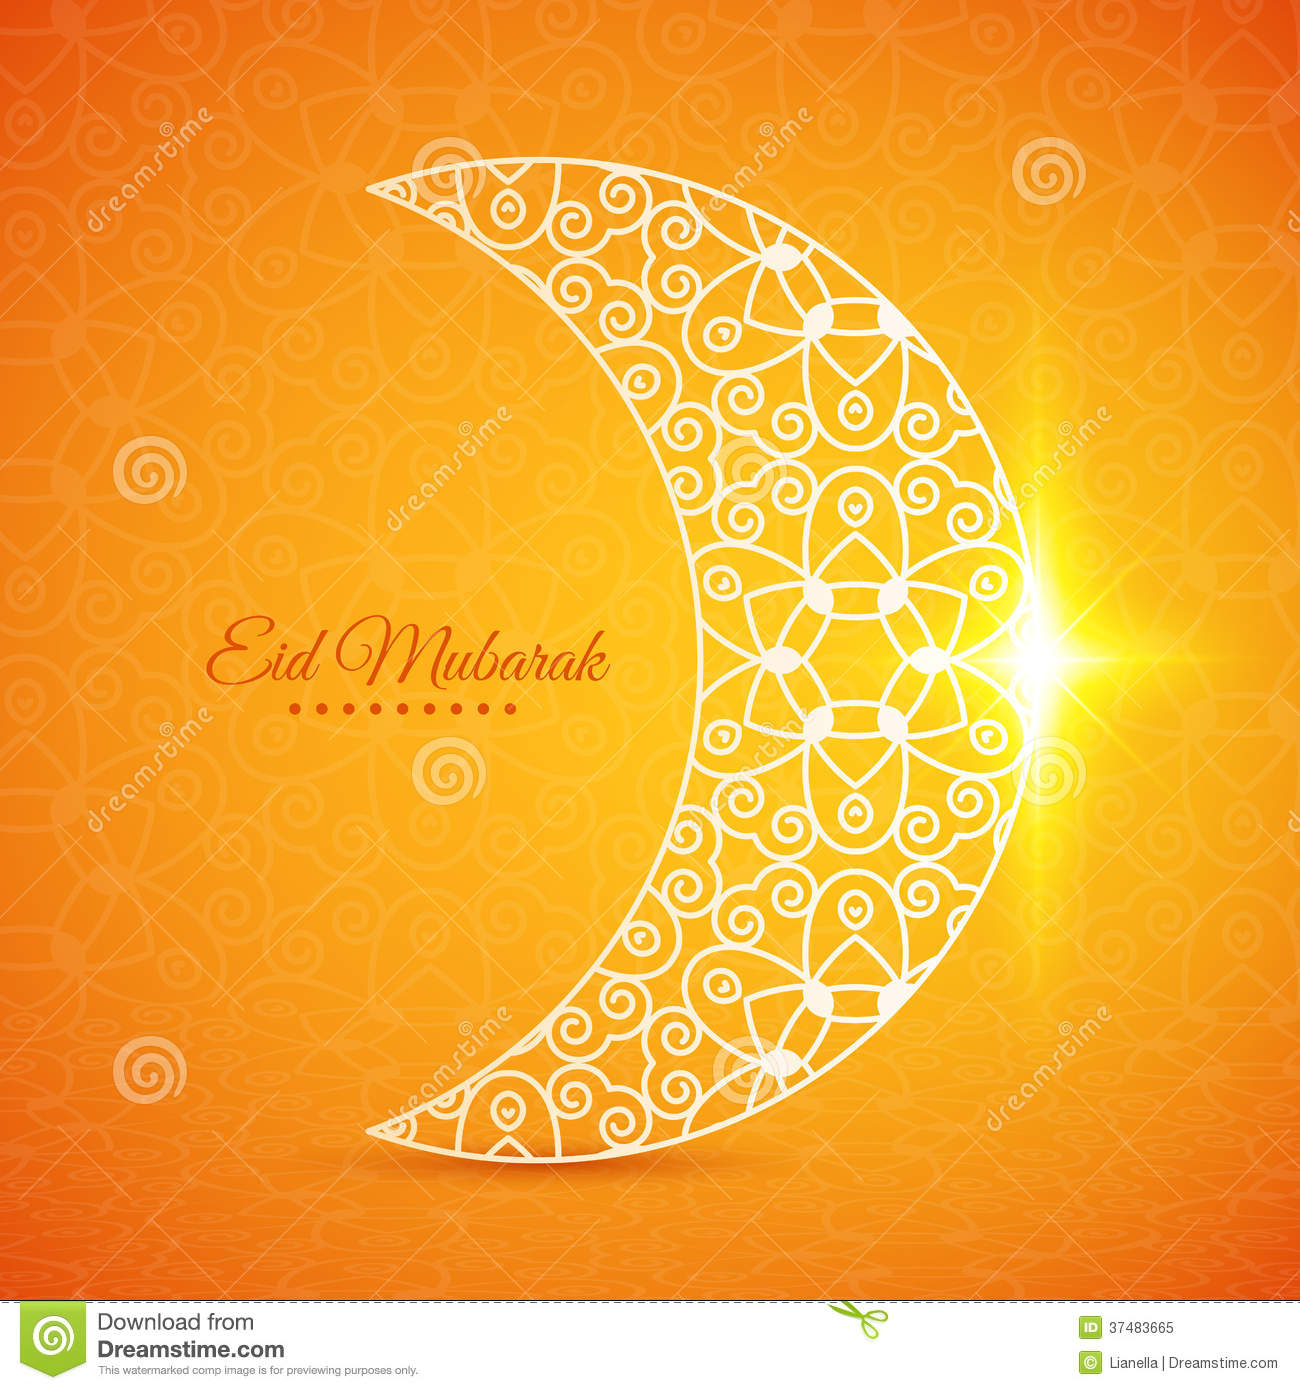 Moon For Muslim Community Festival Eid Mubarak Stock Vector